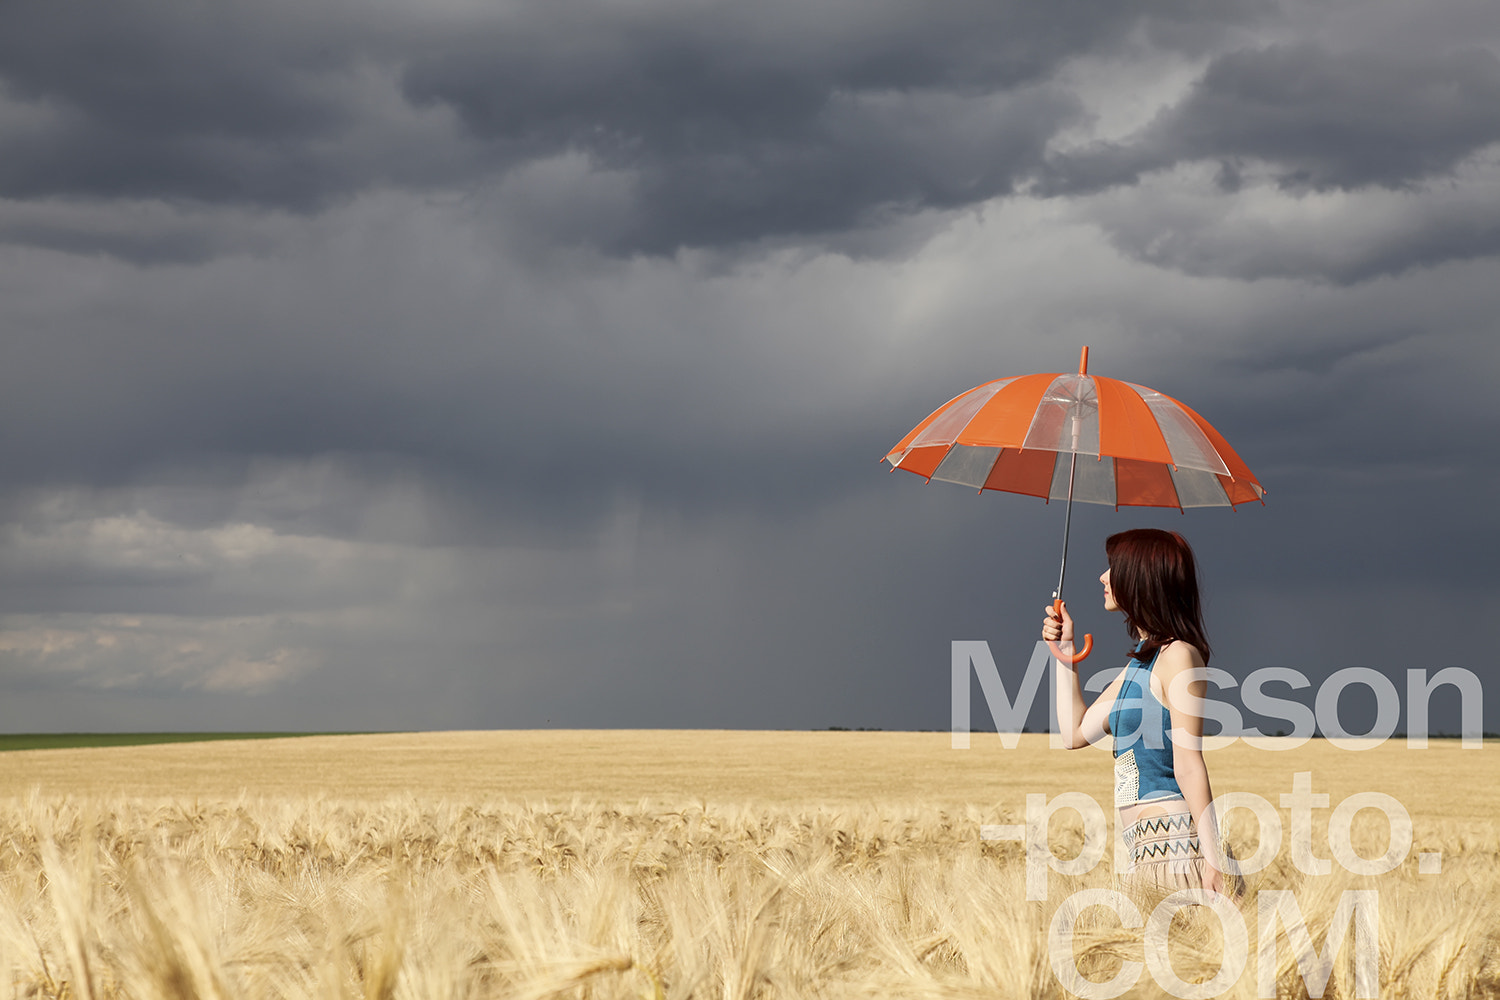 Photograph Girl with umbrella at wheat field at rainy day  by Vladimir Nikulin / Masson on 500px